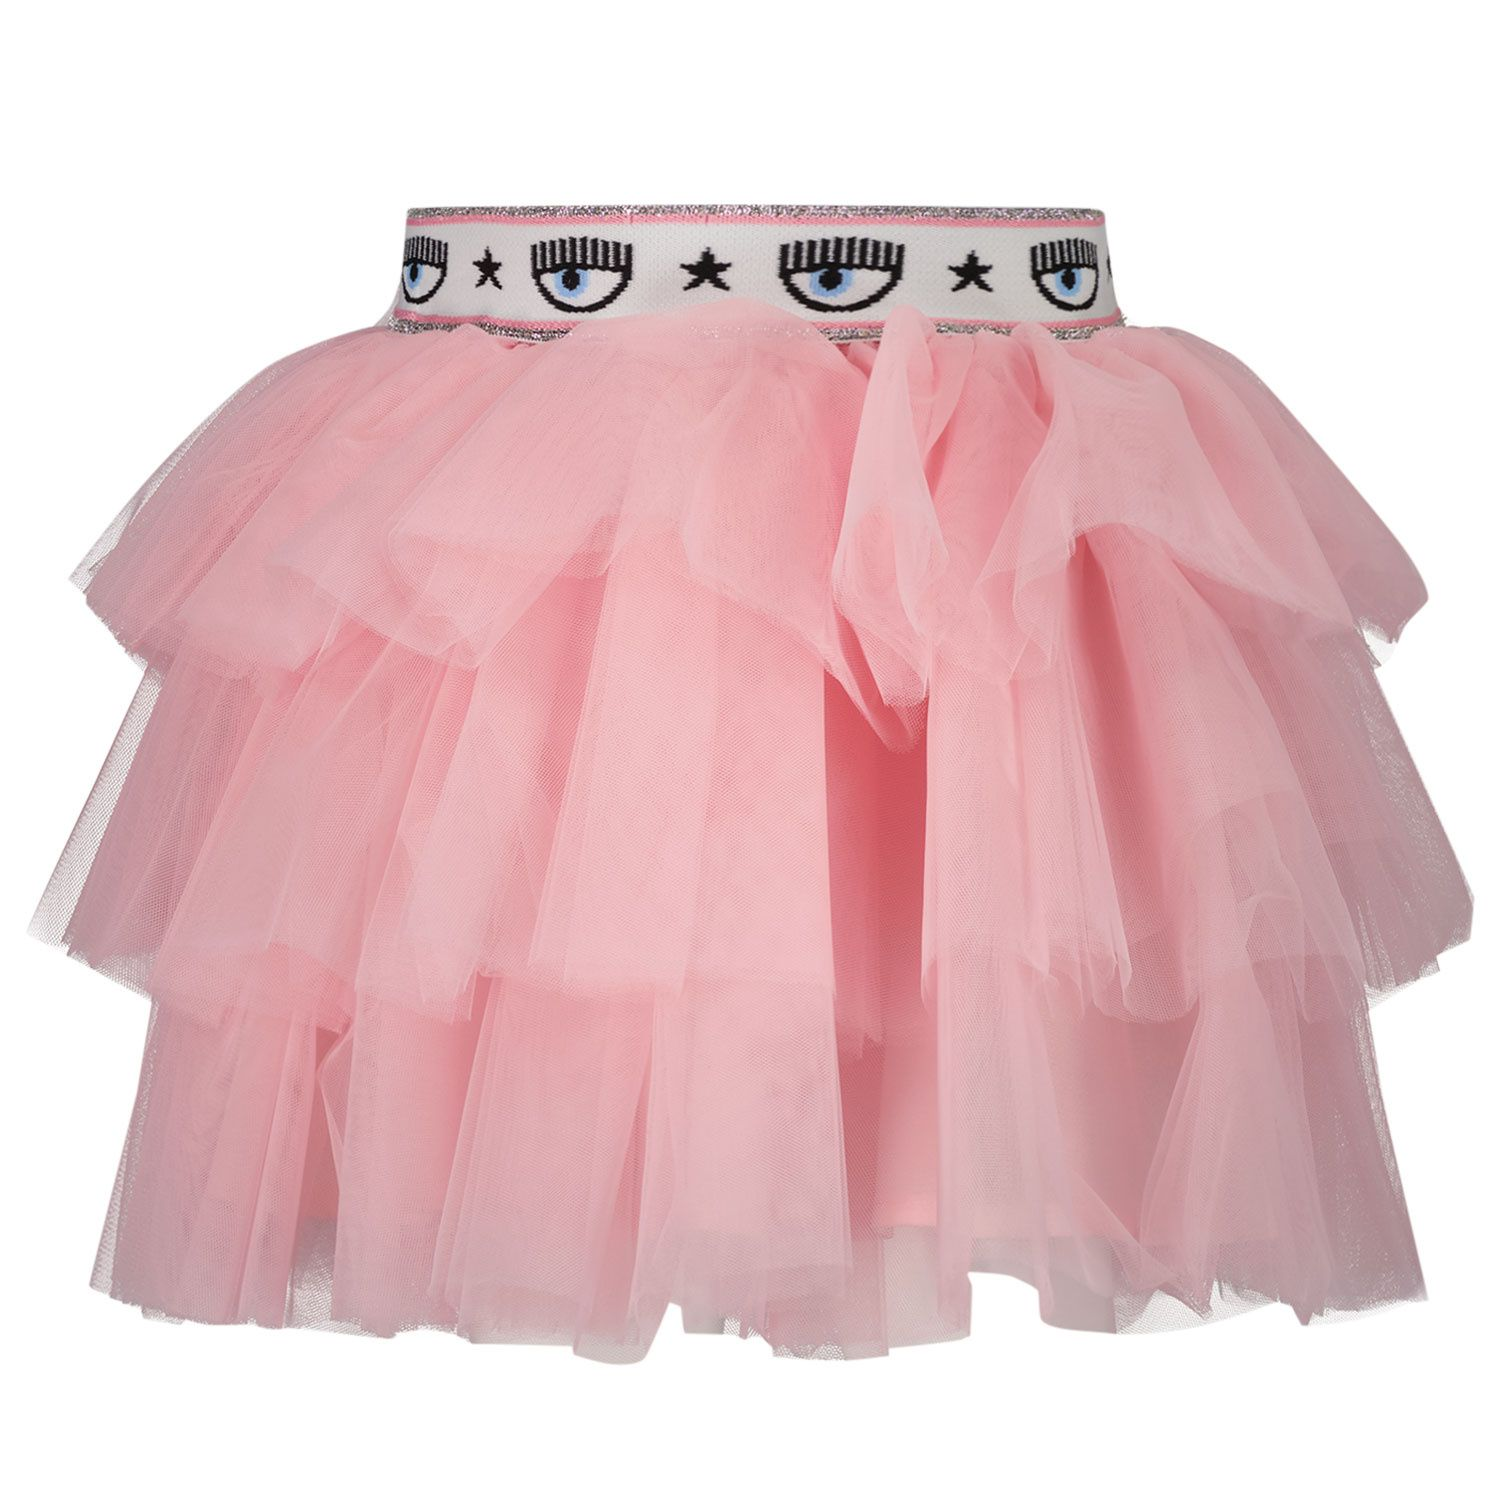 Picture of Chiara Ferragni 538701 baby skirt pink